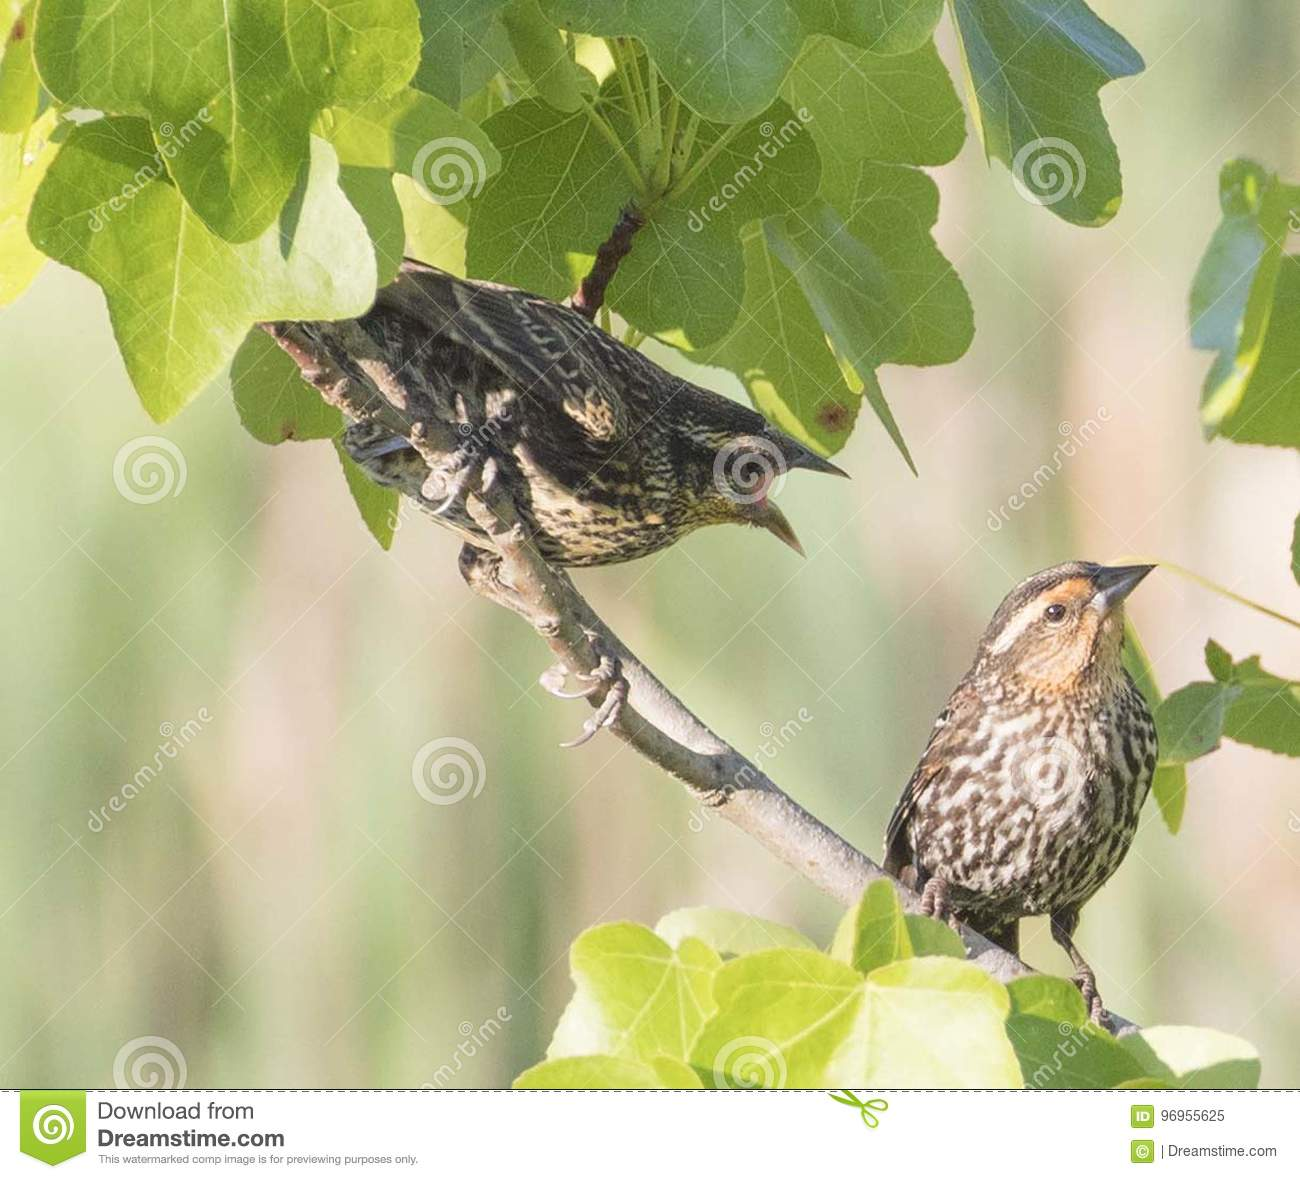 Redwinged Blackbird Fledgling Begs Mother for Food